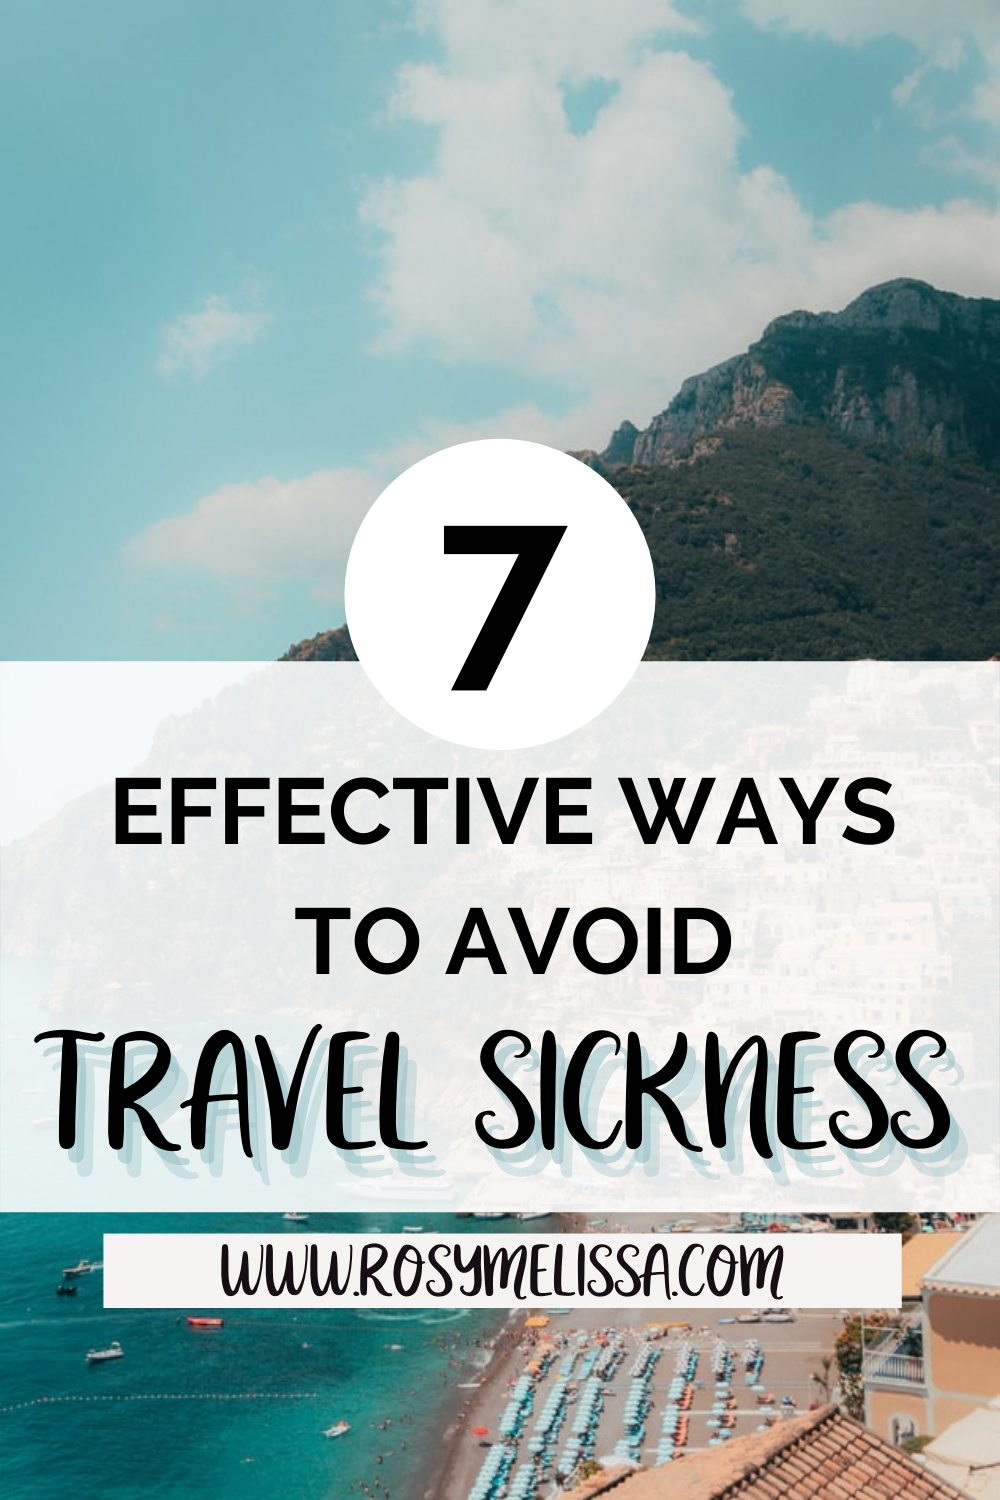 how to avoid travel sickness, sickness on a plane, sickness in the car, prevent motion sickness, travel tips